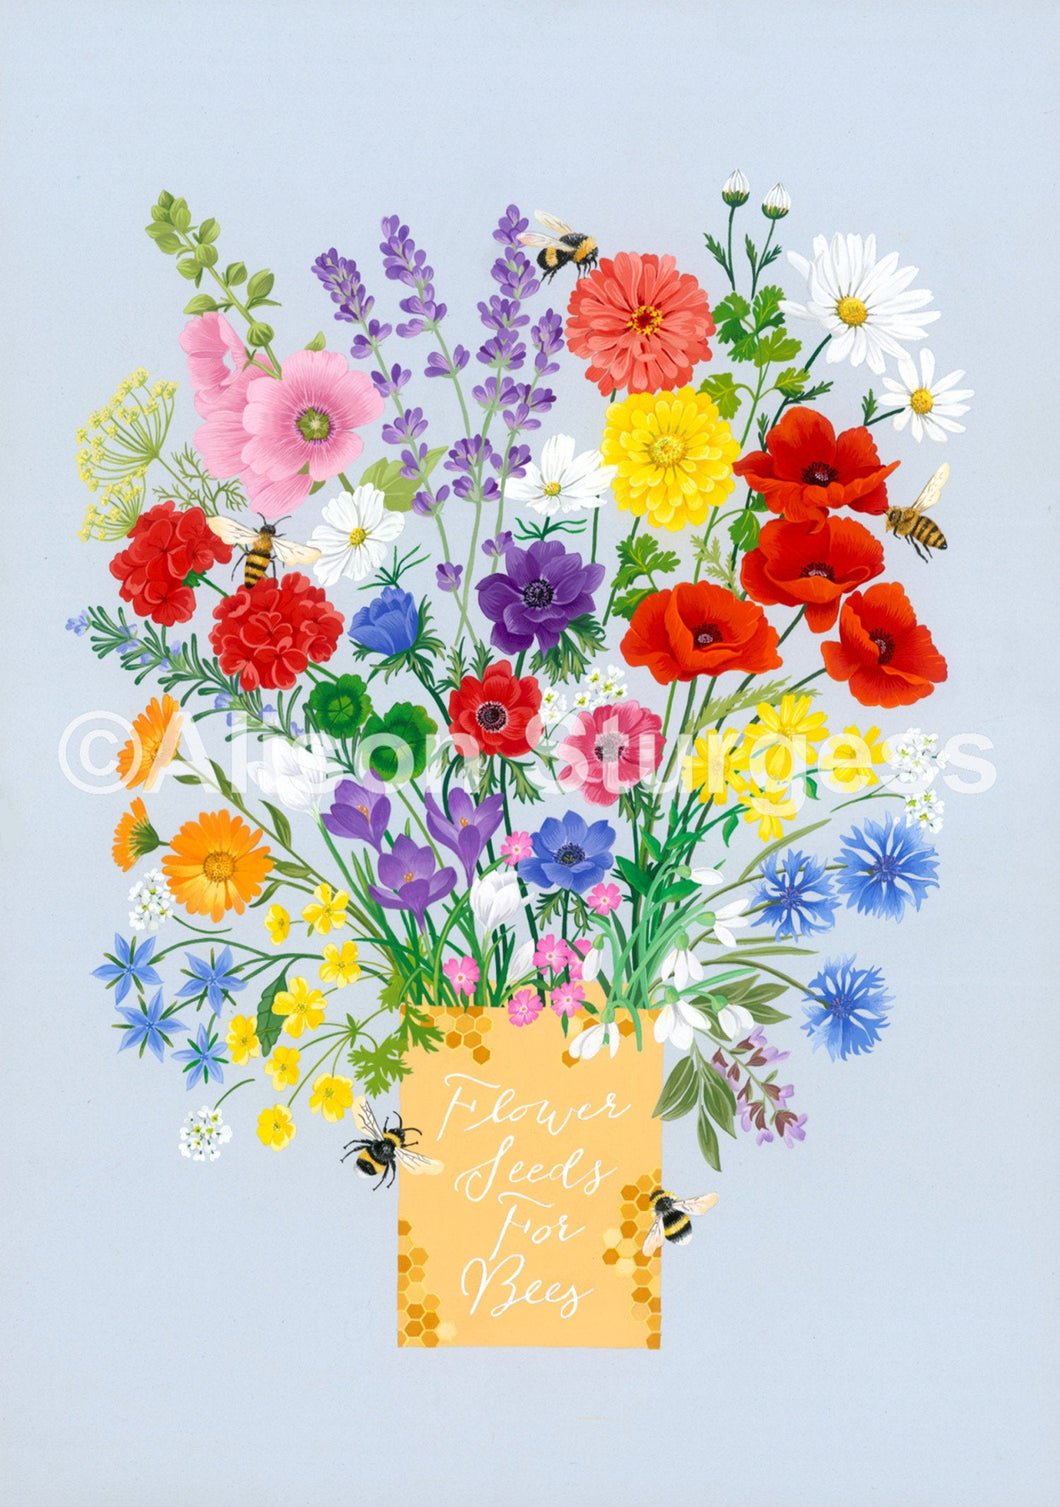 Flower Seeds For Bees Print